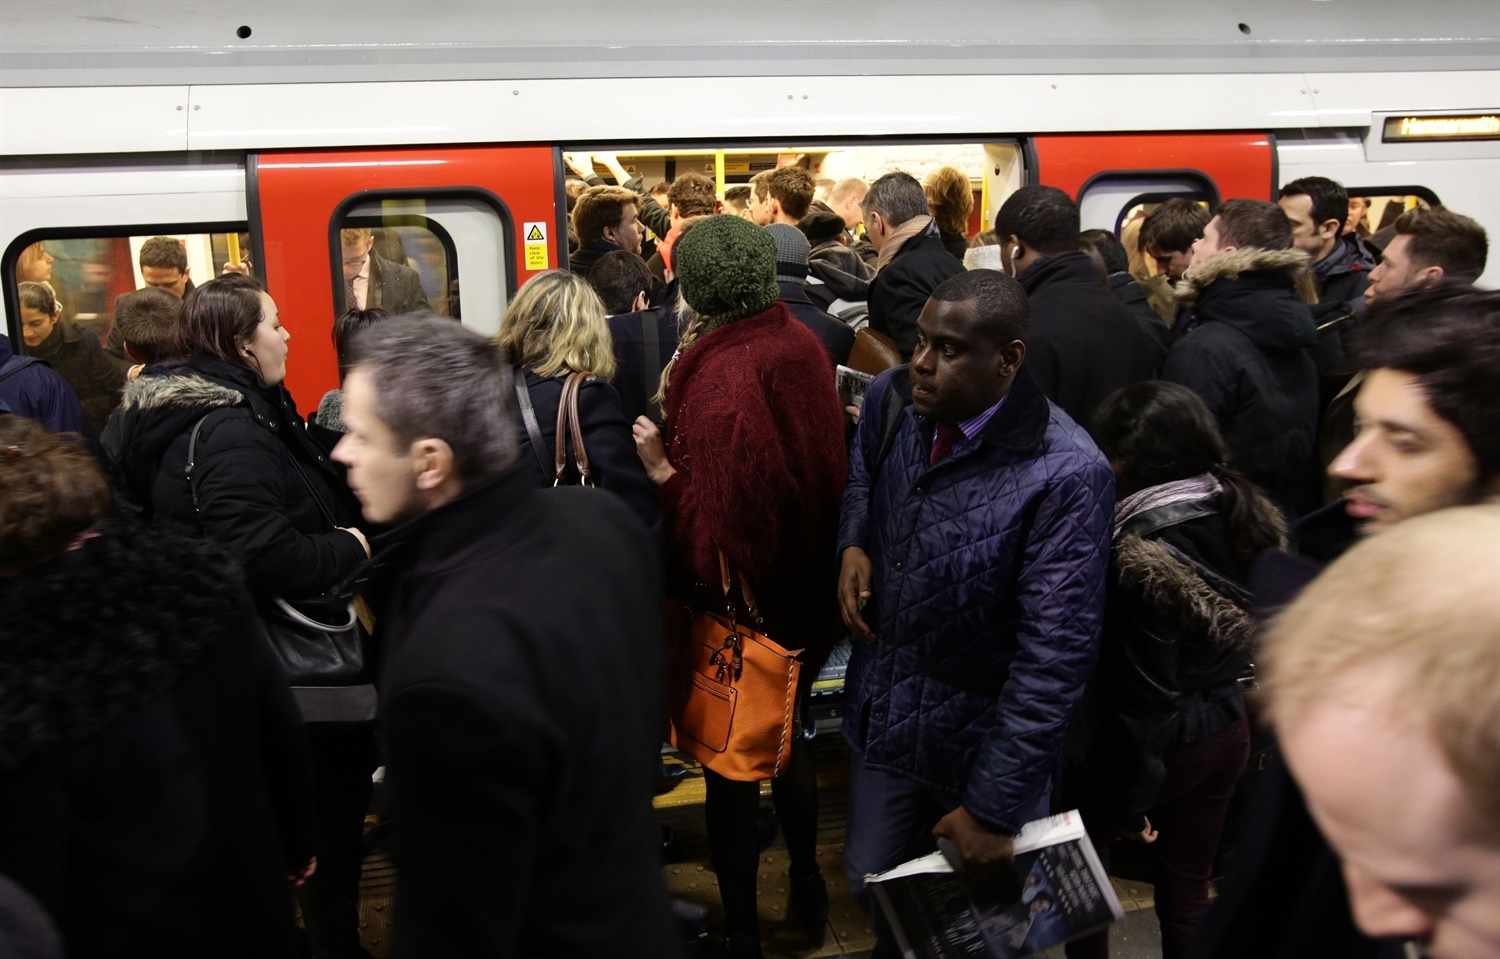 Labour slams DfT for 'national disgrace' of overcrowded trains